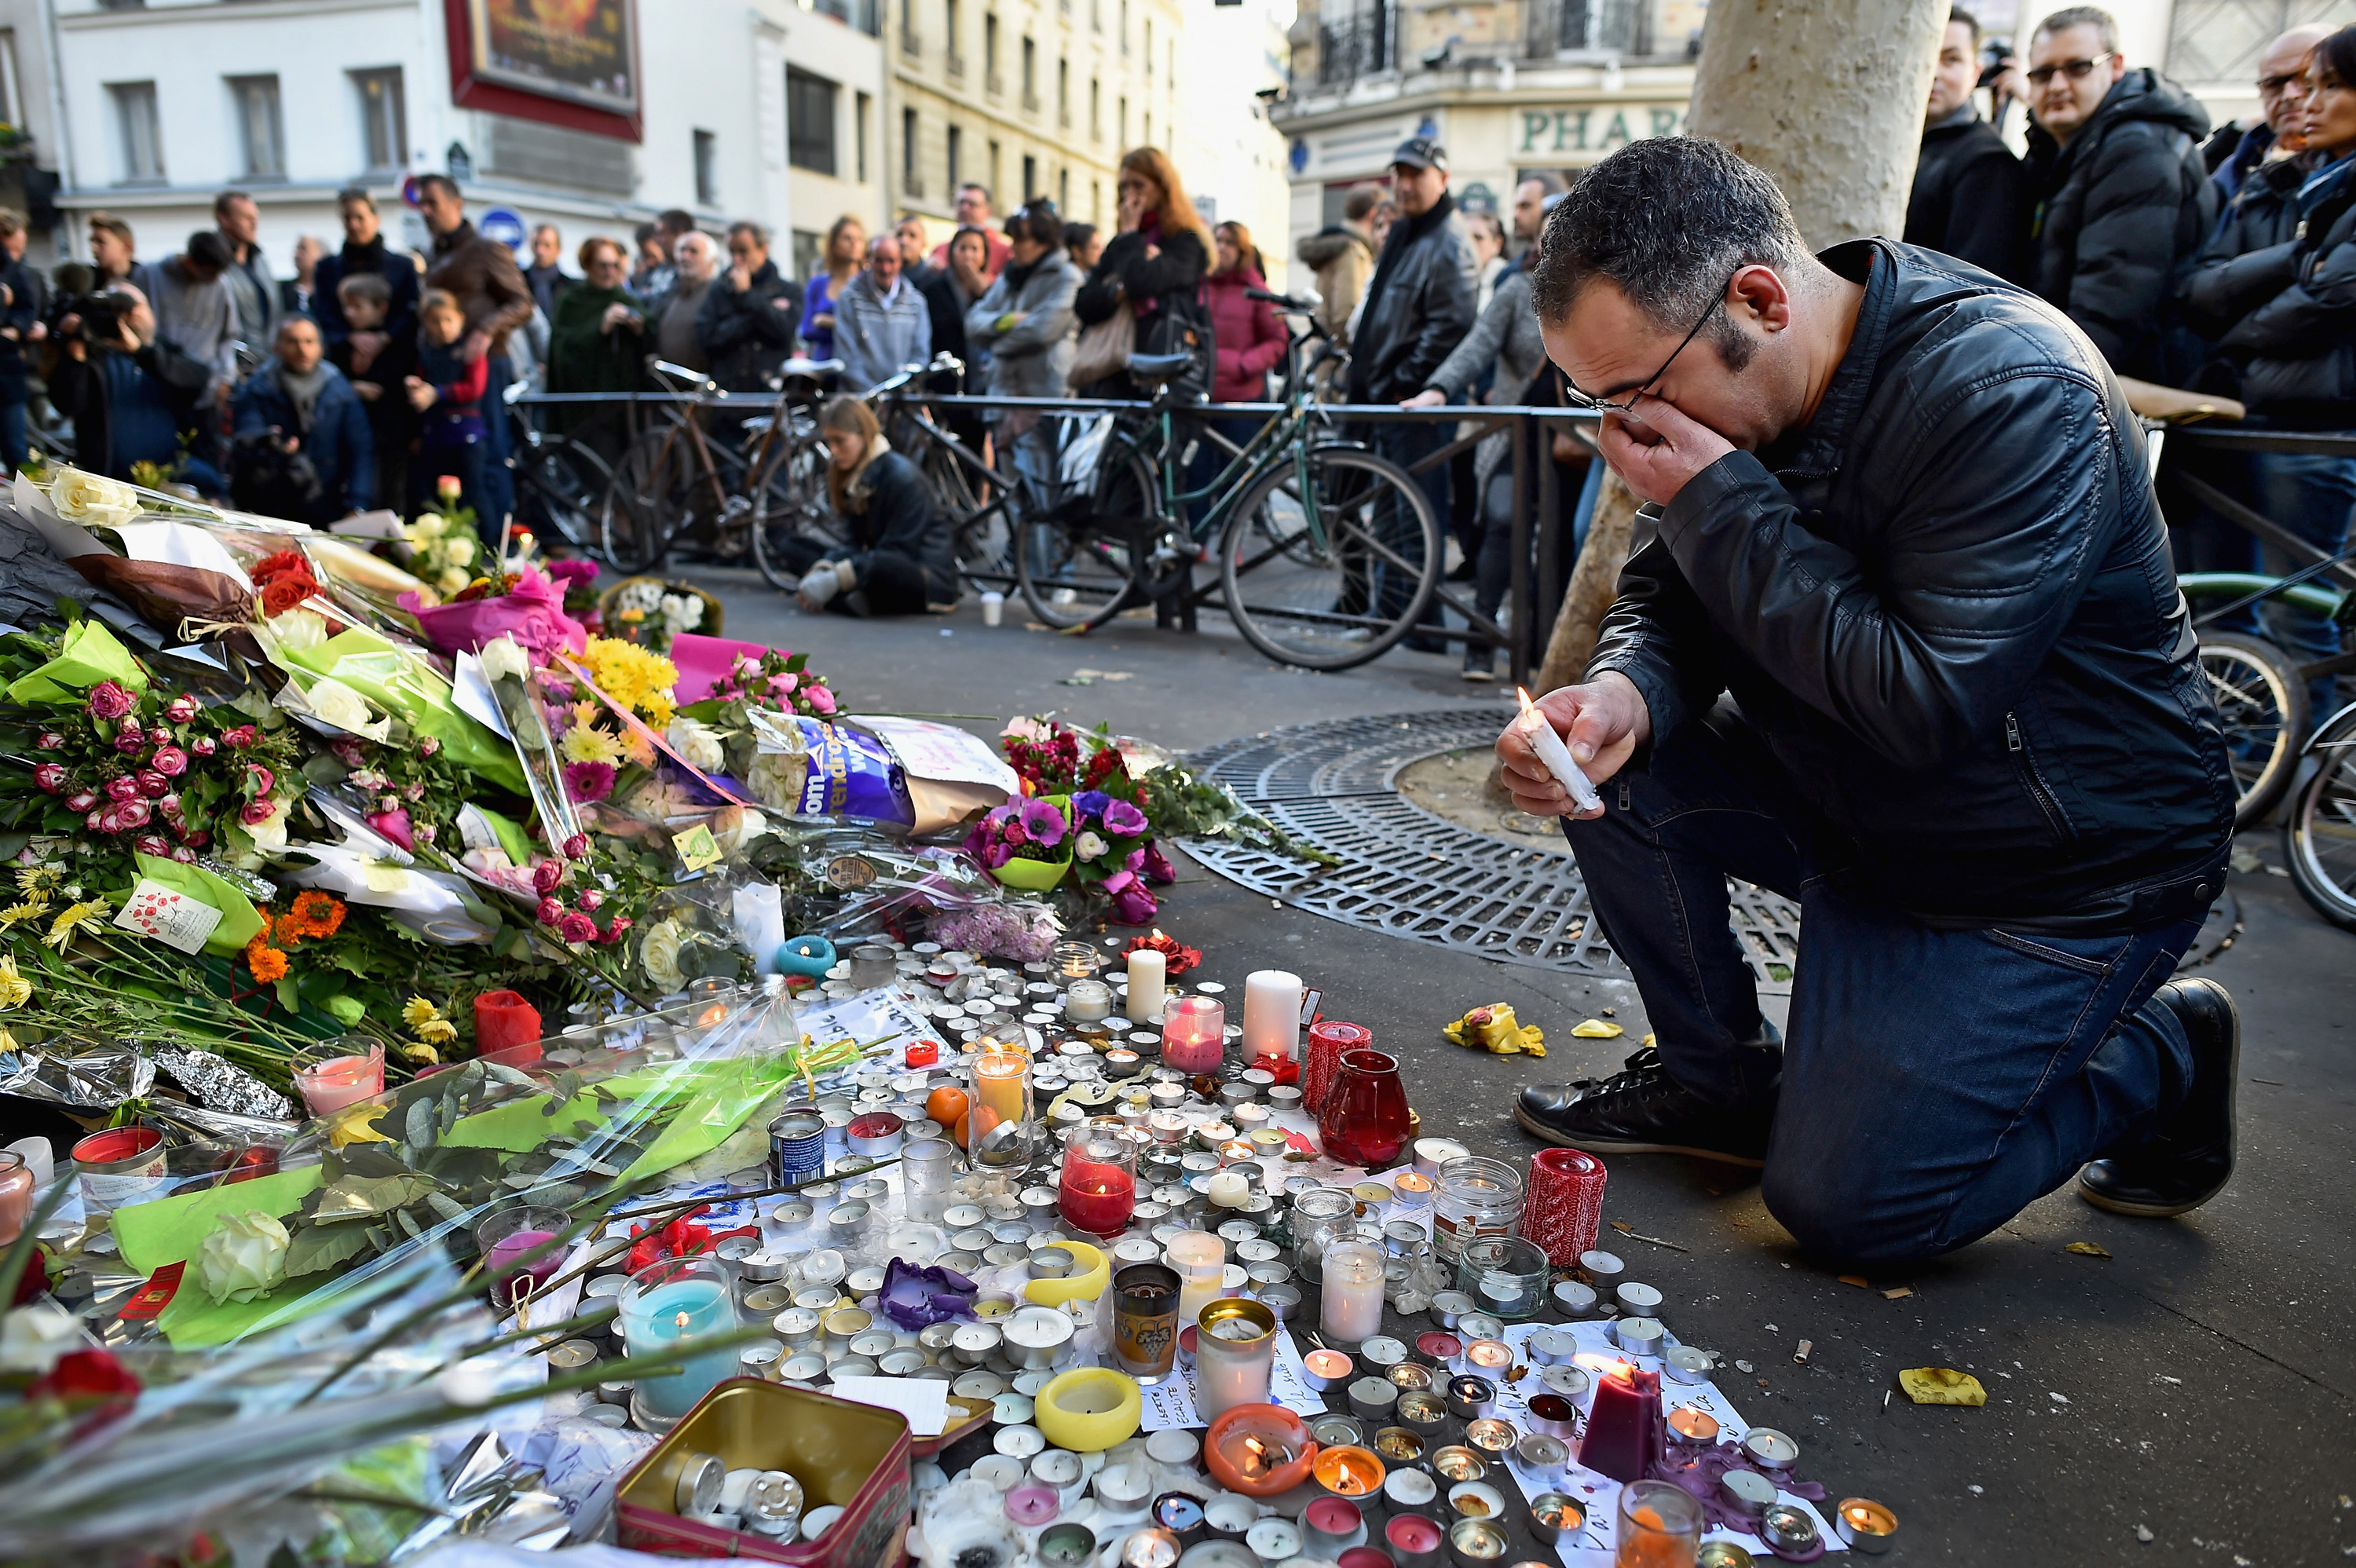 A man mourns the dead in the November 2015 Paris terrorist attacks gather at a memorial outside the La Belle Equipe restaraunt on Rue de Charonne, one of the locations where gunmen massacred innocents.